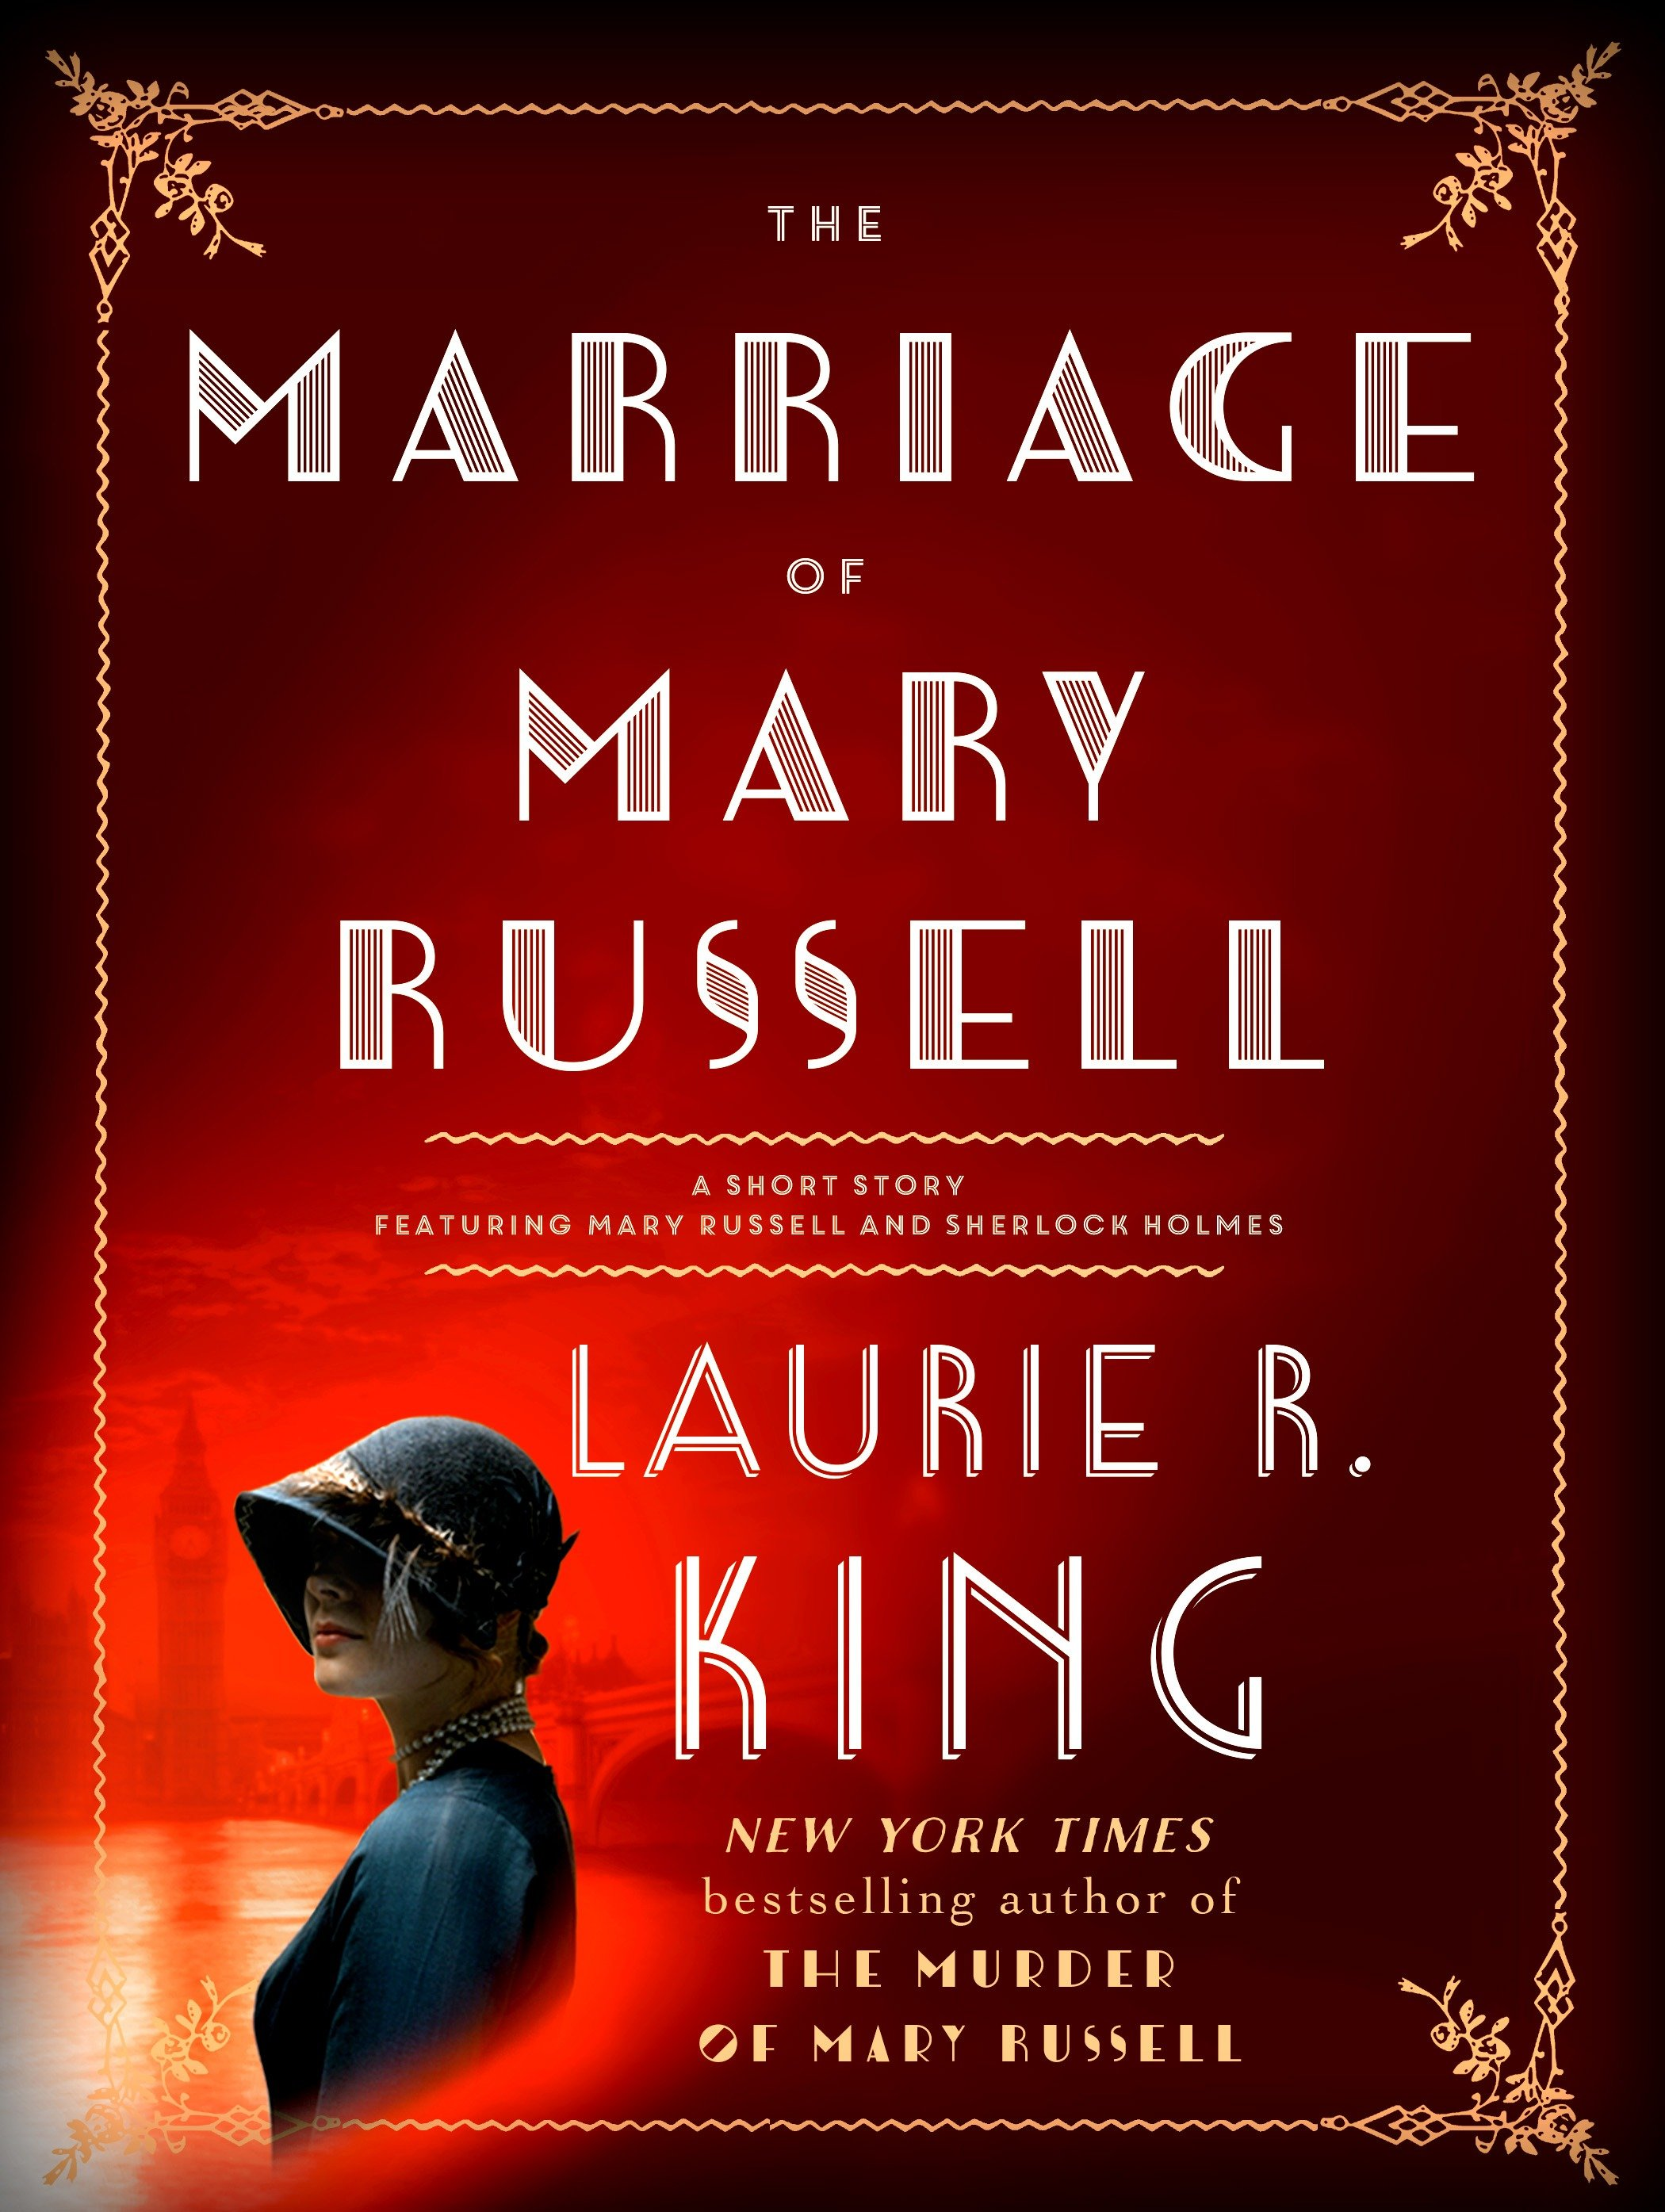 The marriage of Mary Russells a short story featuring Mary Russell and Sherlock Holmes cover image